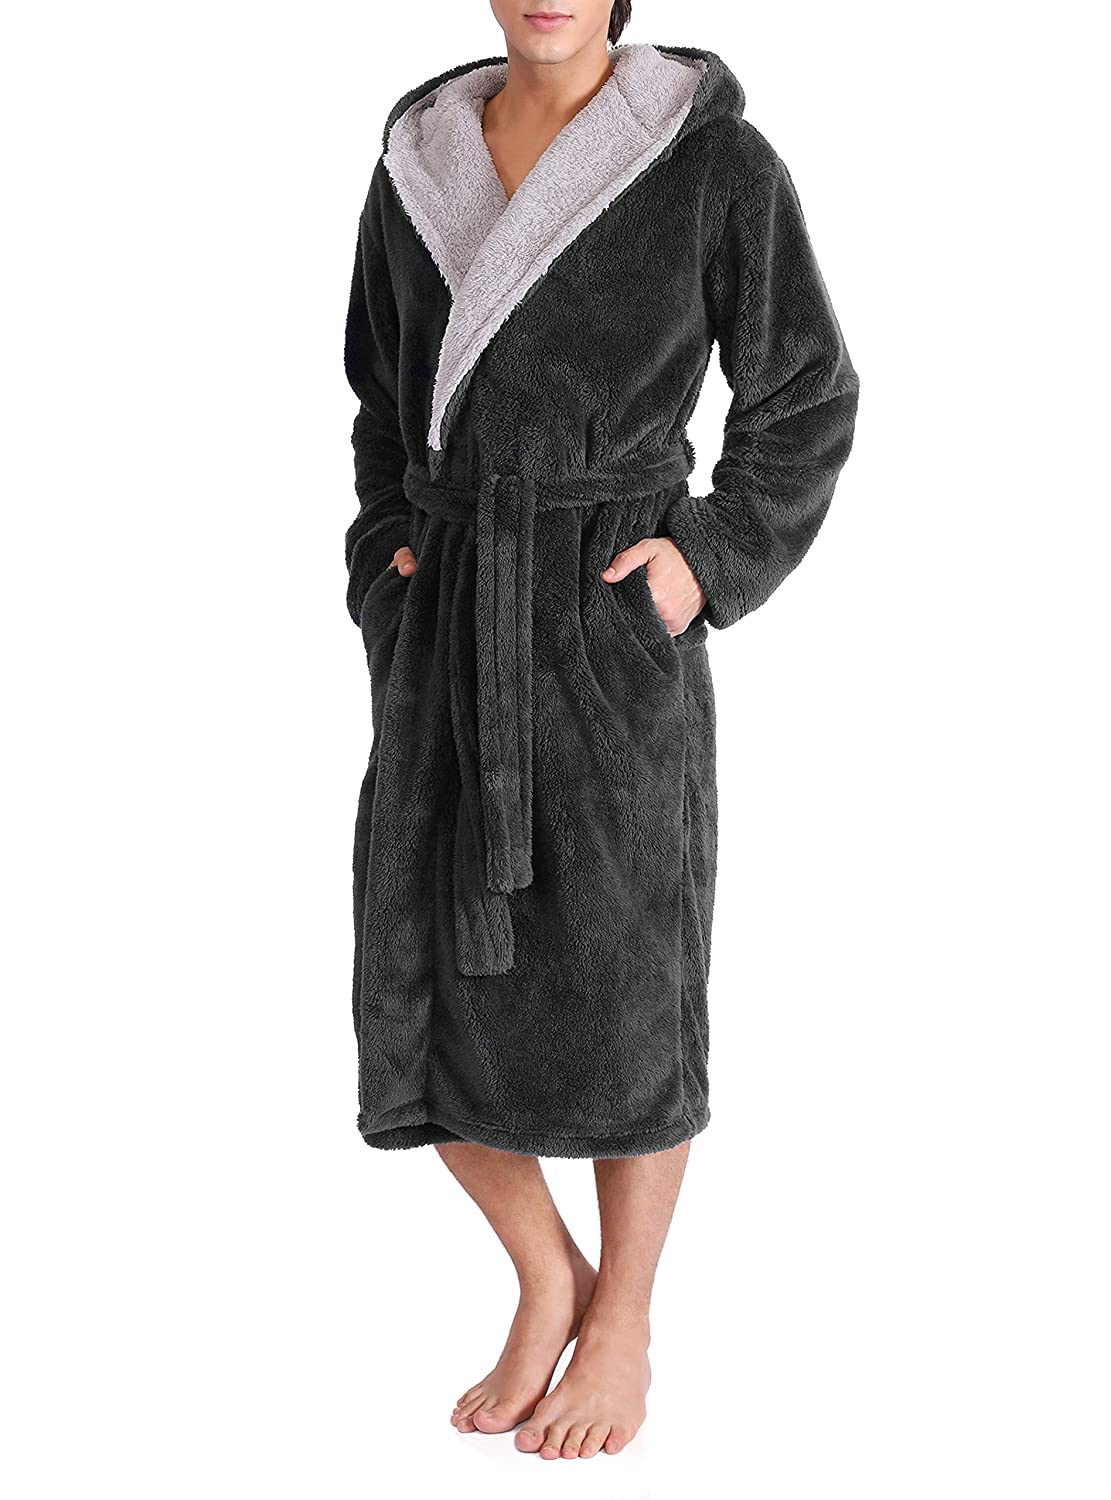 David Archy Men's Hooded Fleece Plush Soft Shu Velveteen Robe Full Length Long Bathrobe